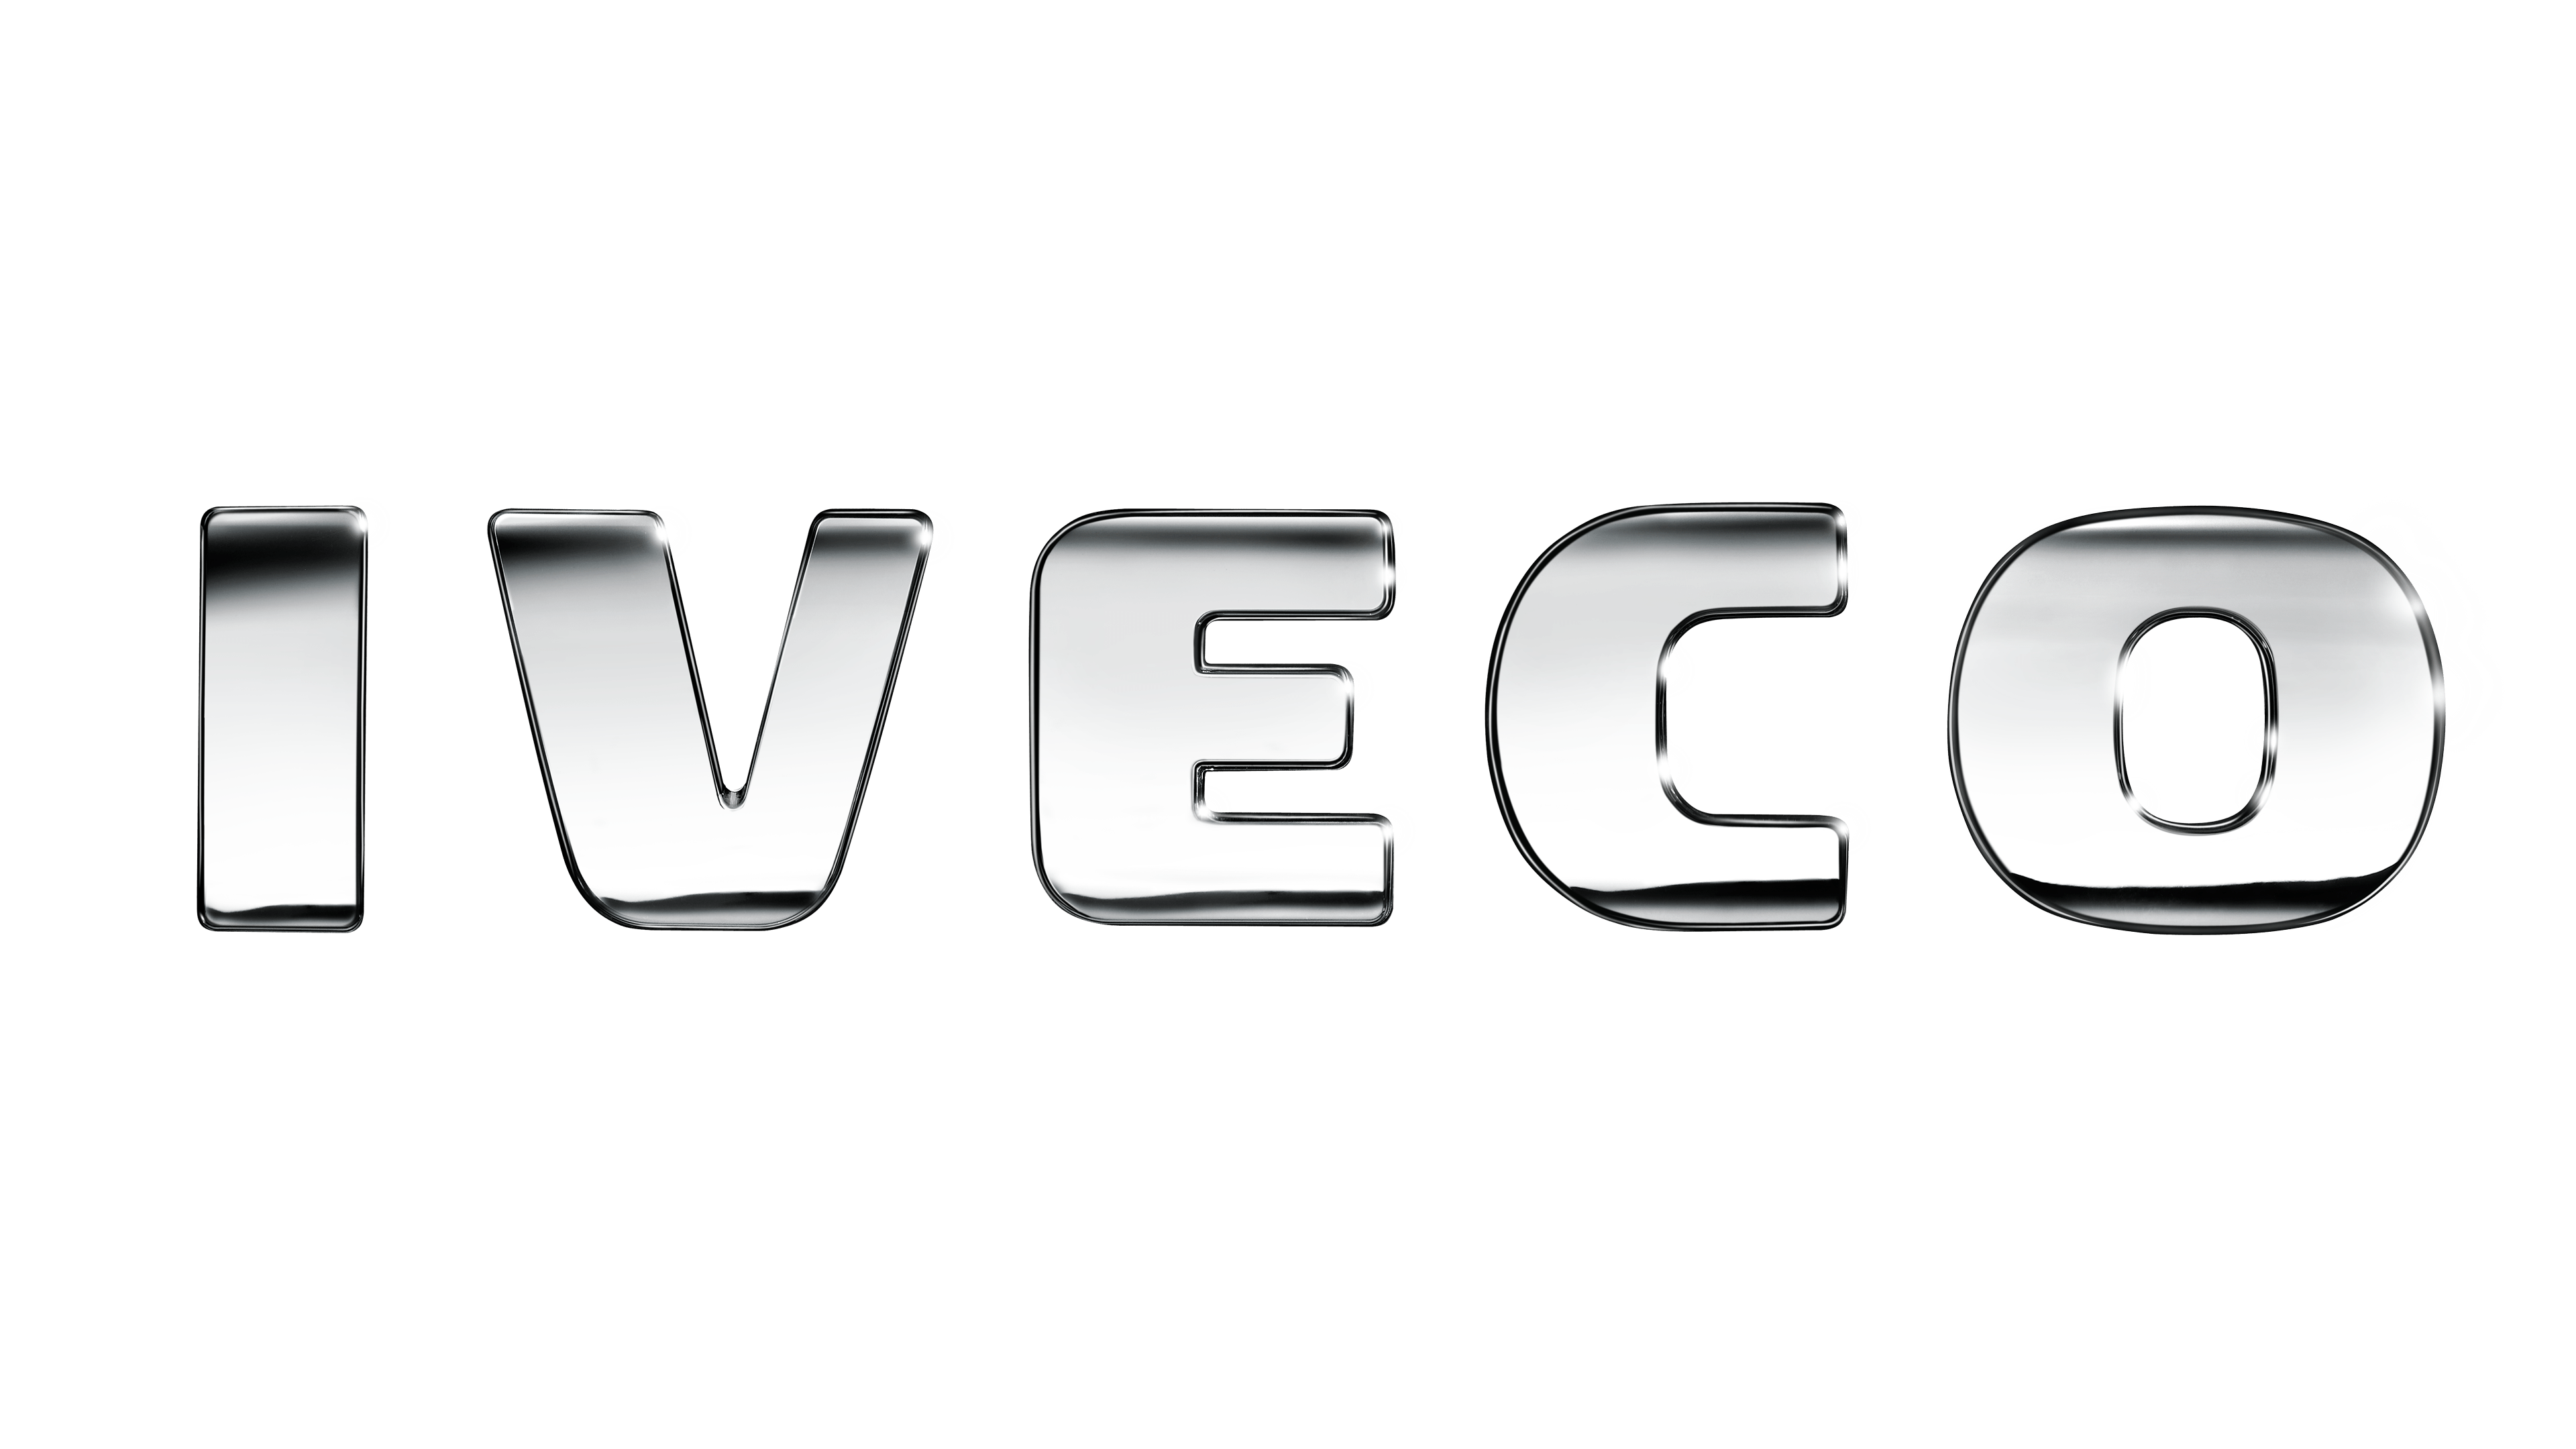 Lost car keys replacement for Iveco